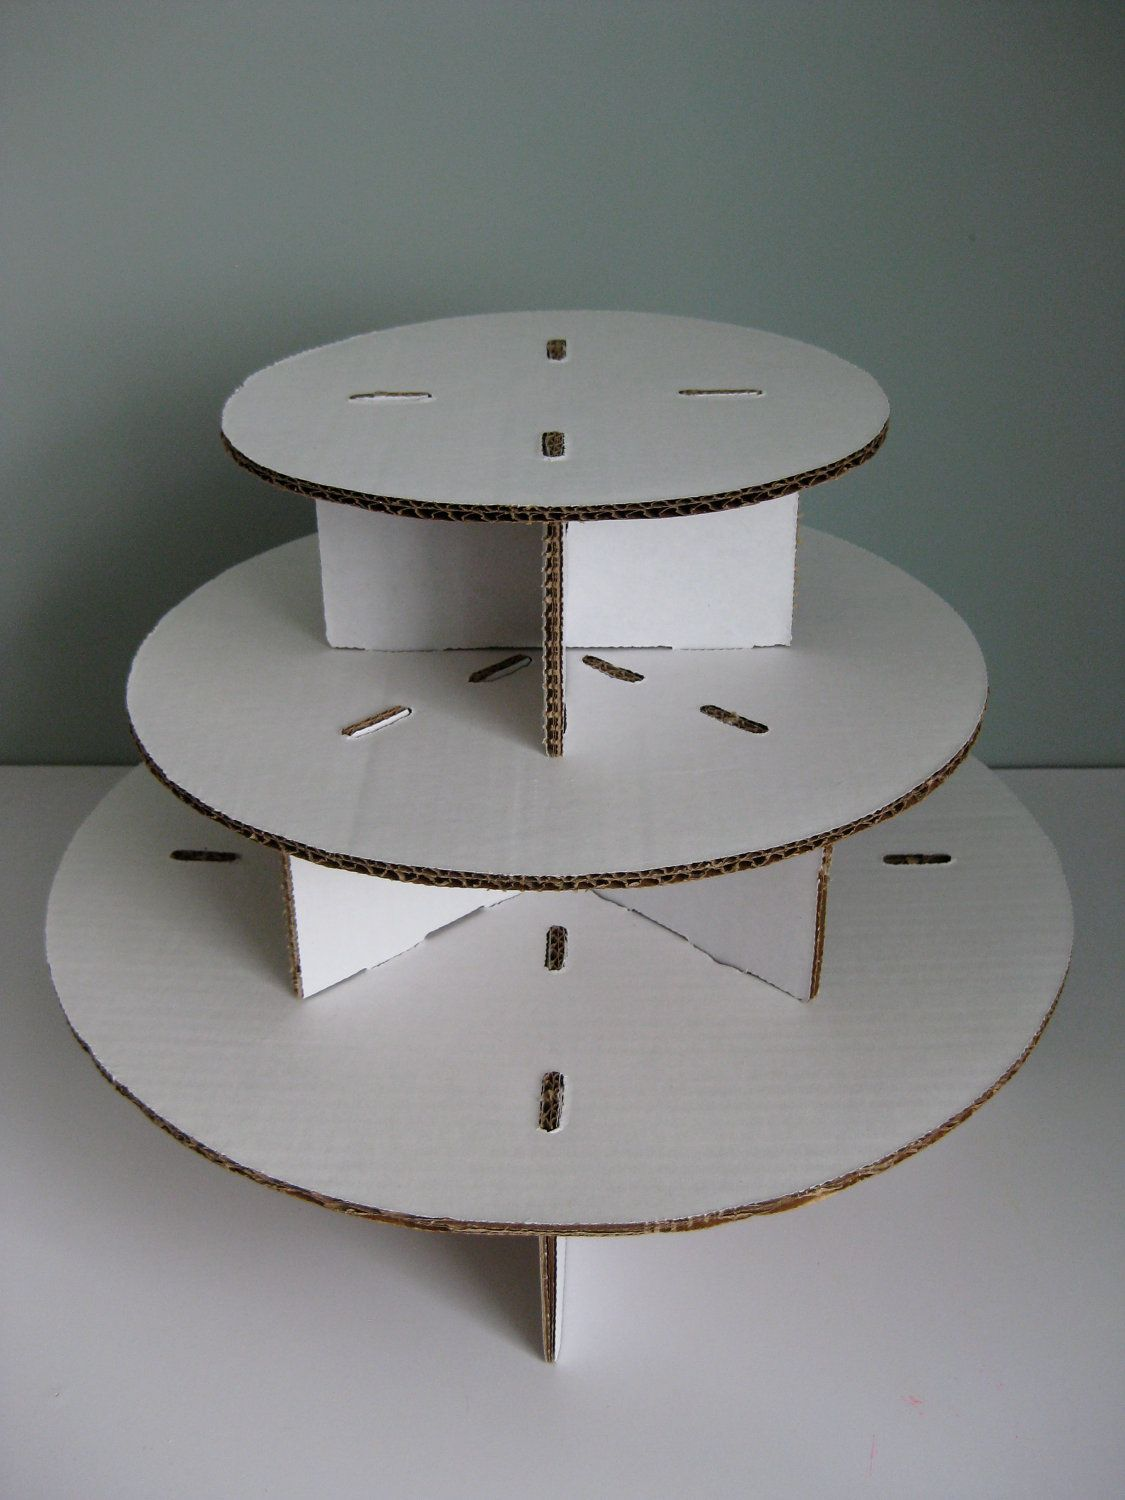 Unfinished Three Tiered Cardboard Cupcake Stand Do It Yourself 15 50 Via Etsy Diy Cupcake Stand Cardboard Cupcake Stand Diy Cupcakes